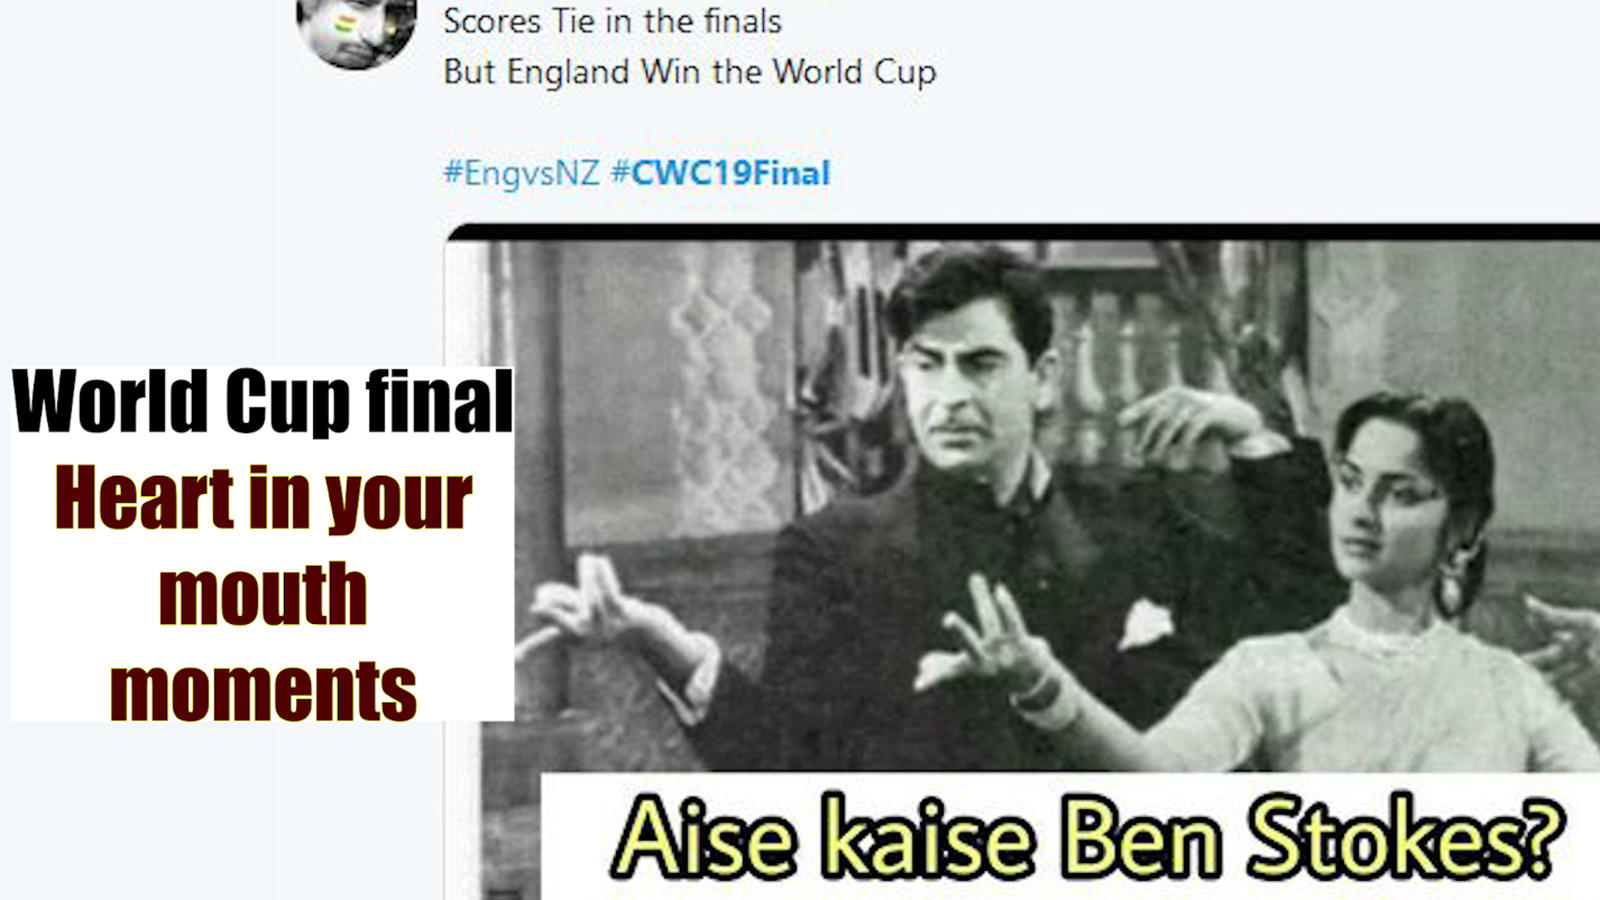 world-cup-final-heart-in-your-mouth-moments